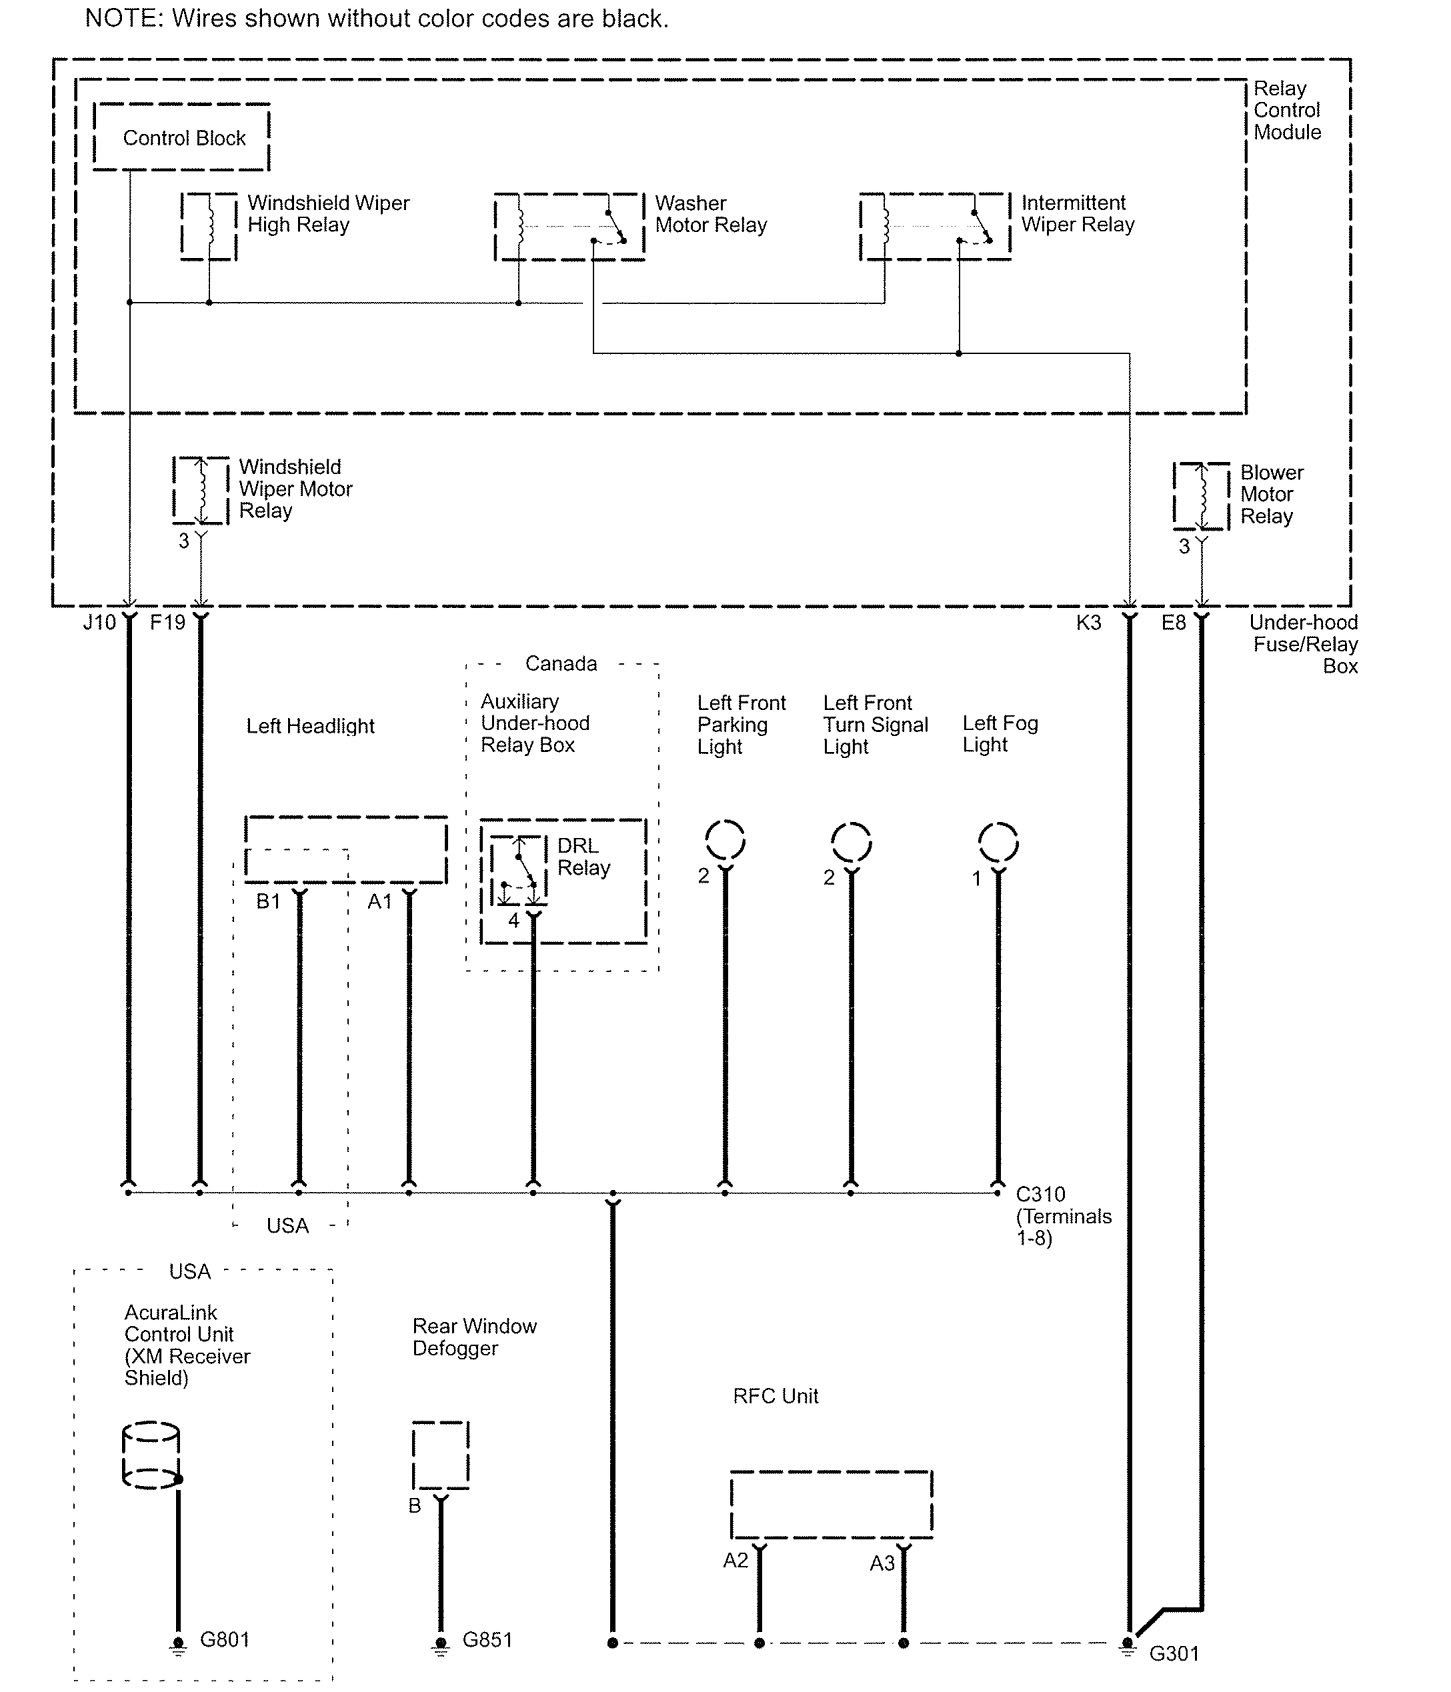 Awesome Wiring Diagram For 1997 Acura Rl Pictures Schematic – Lund Light Wiring Diagram